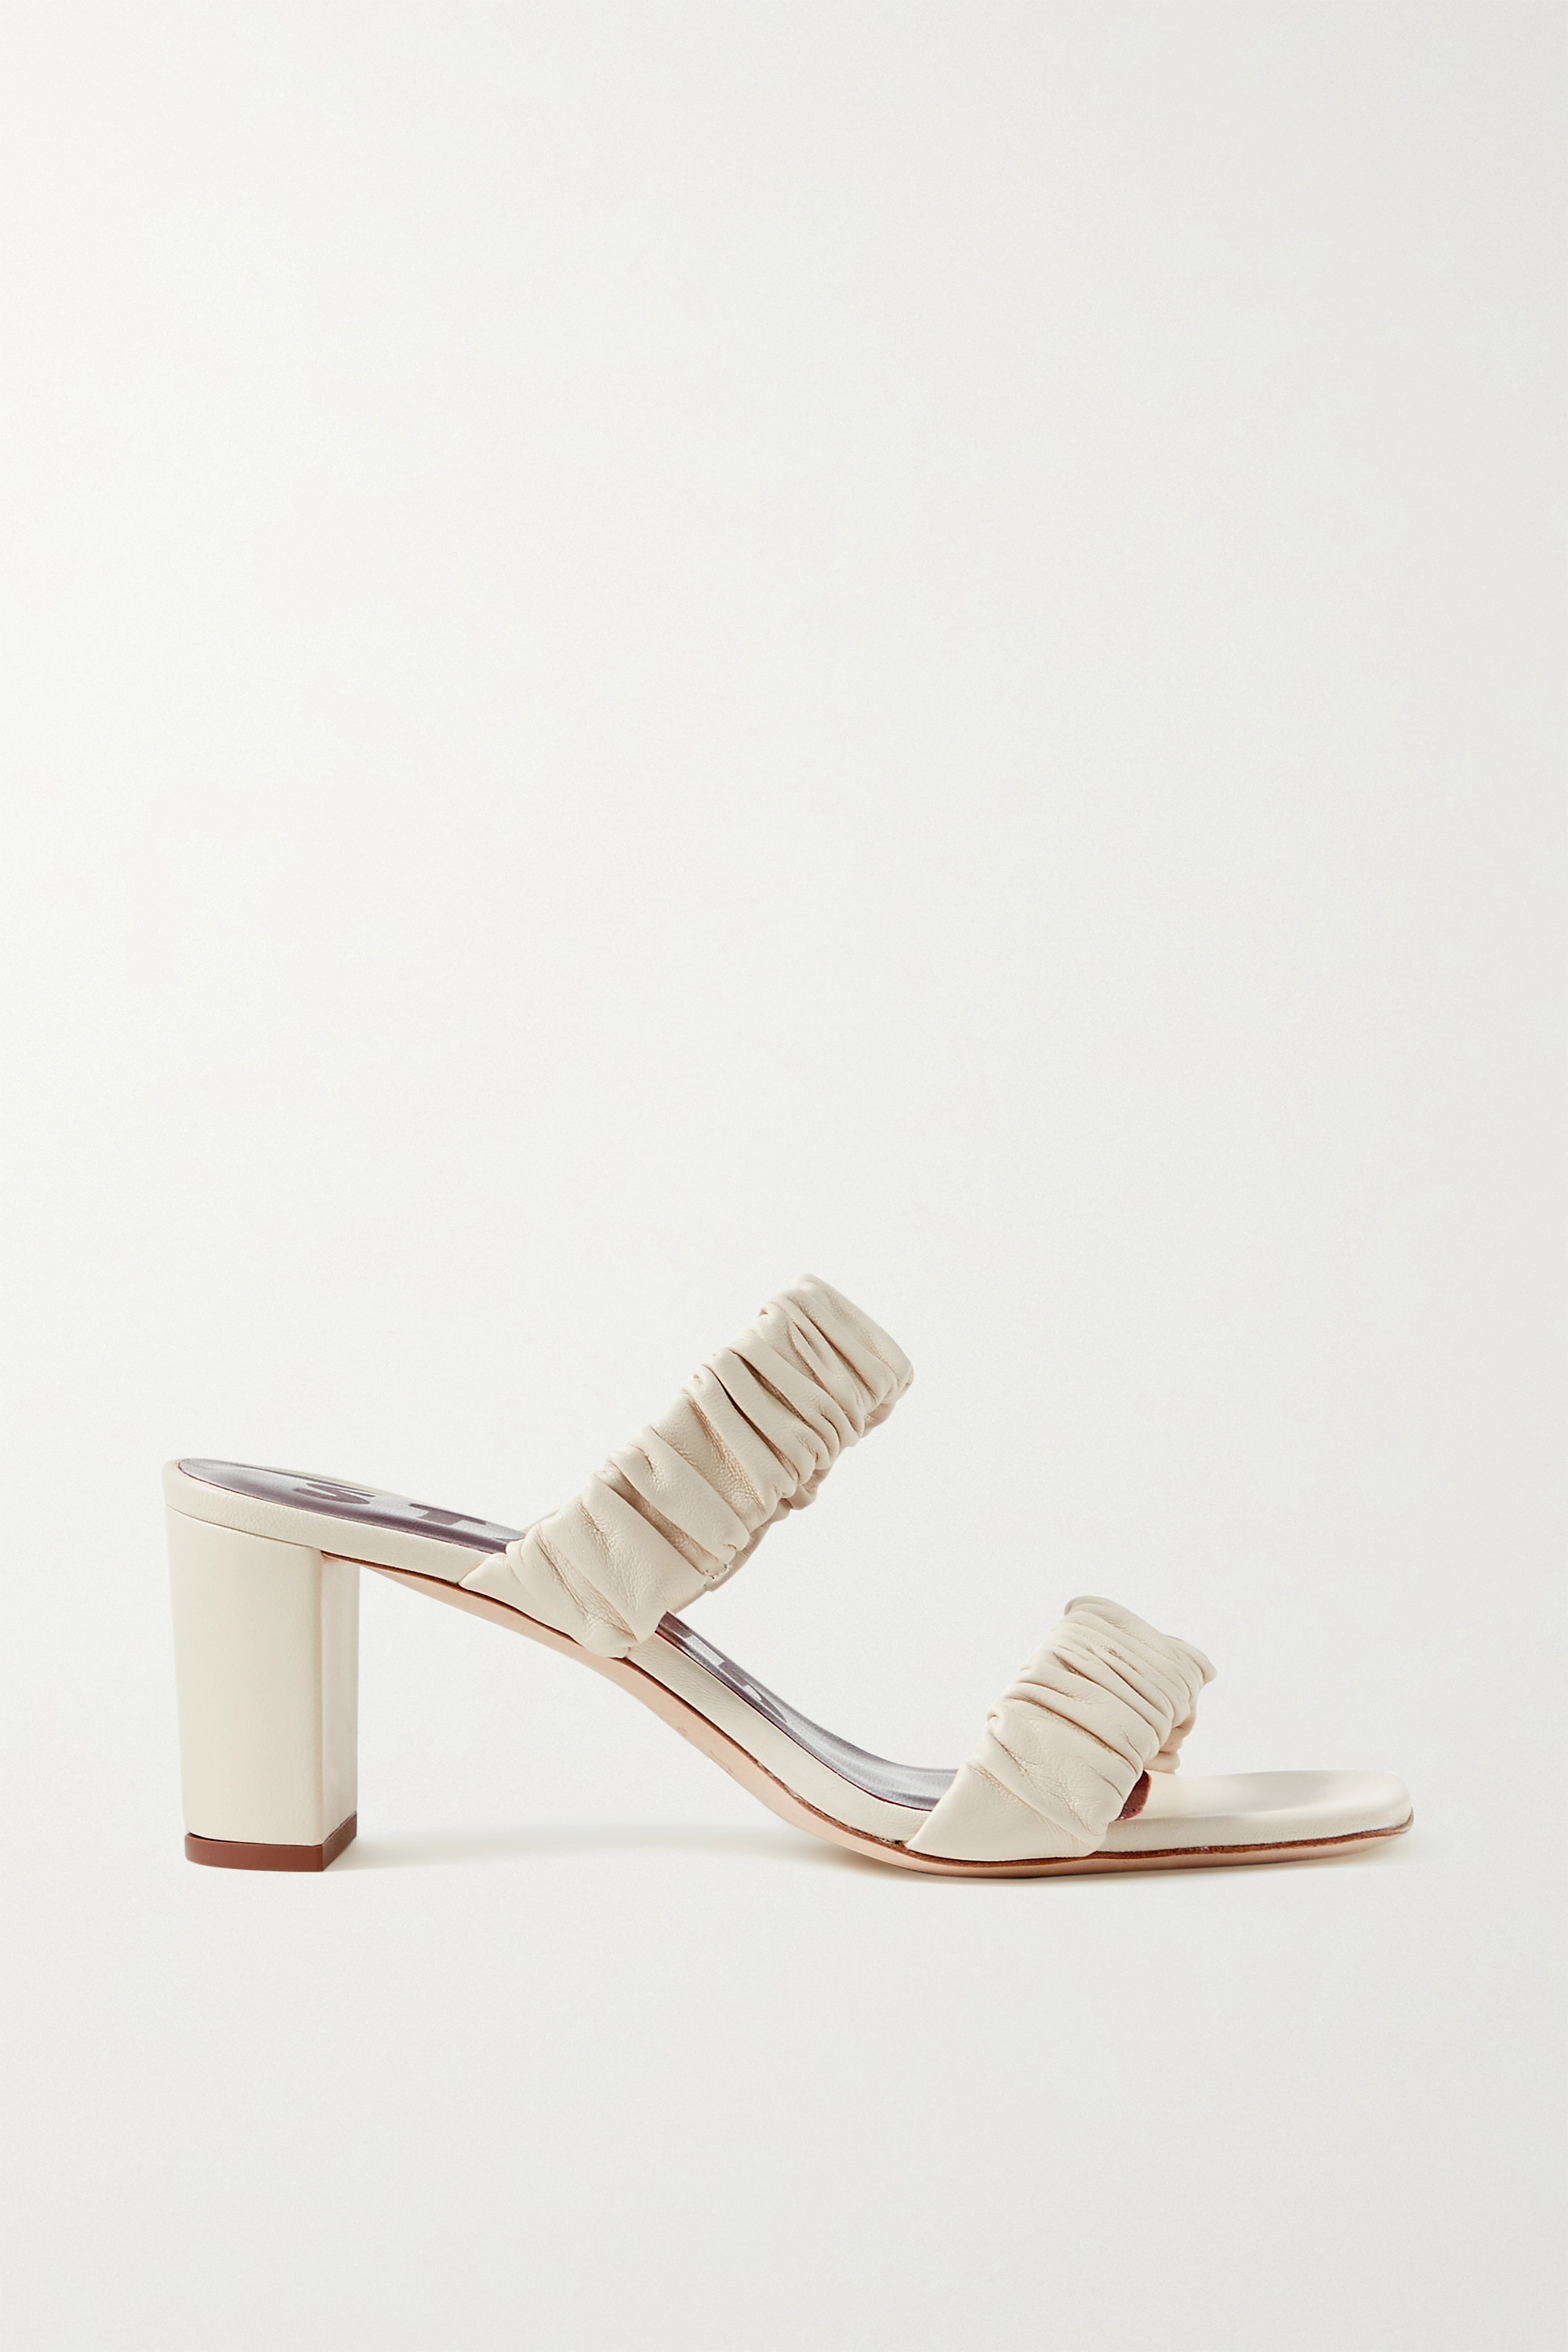 STAUD Frankie ruched leather sandals